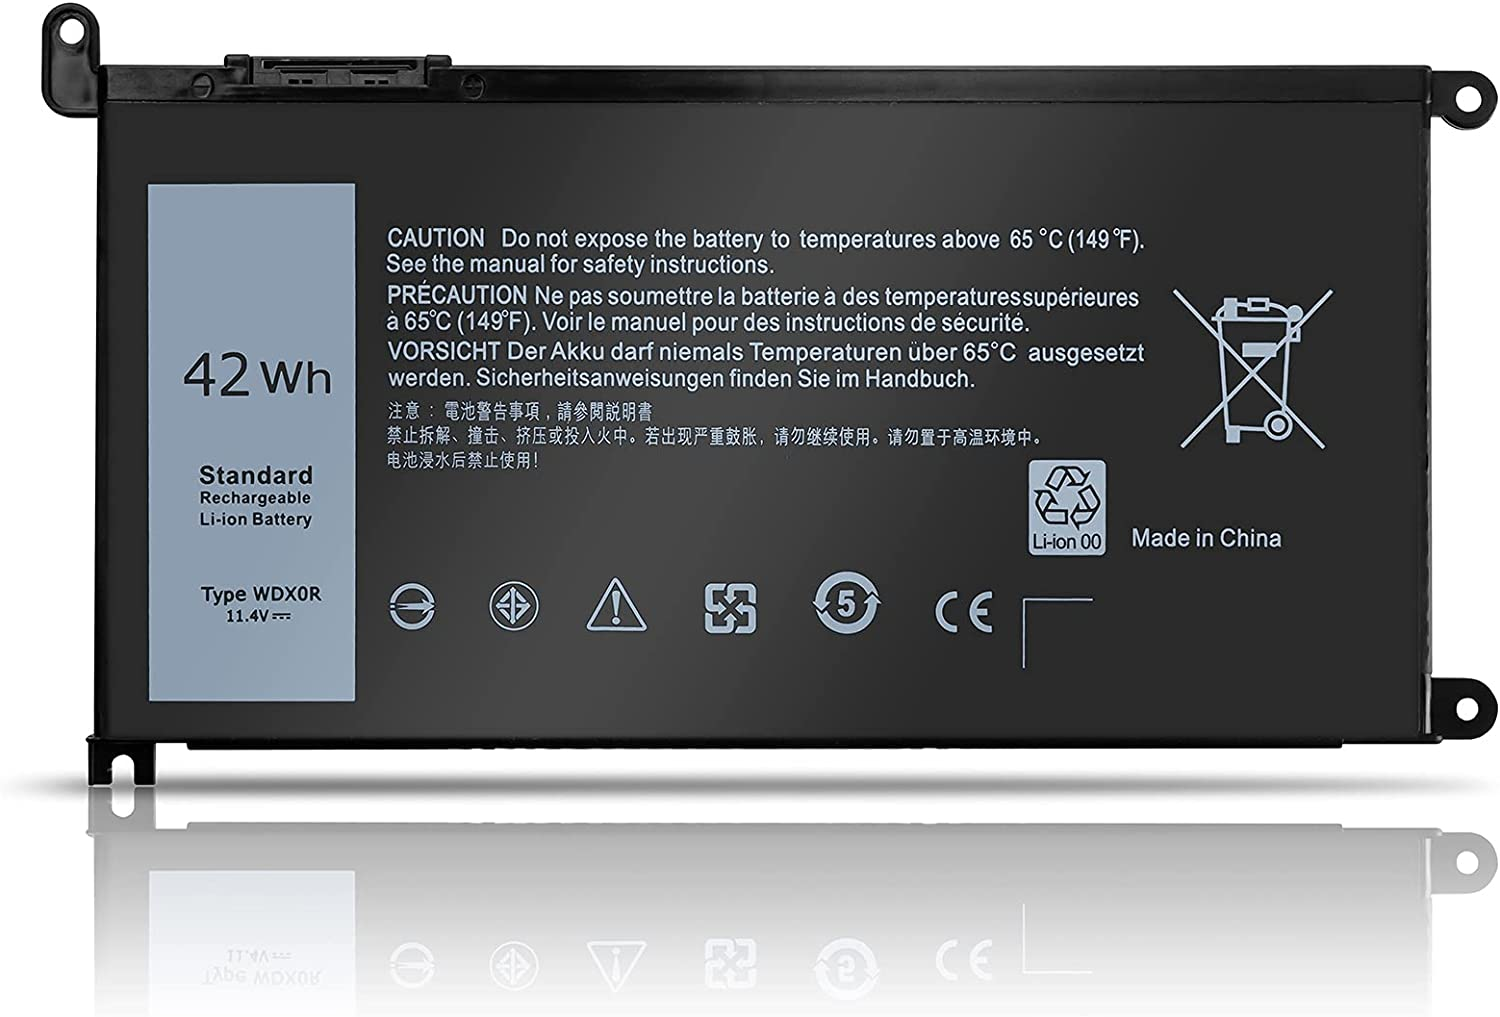 WDX0R 42Wh Laptop Battery for Dell Inspiron 15 5000 7000 Series 15 5567 7579 5565 5568 5570 5578 5579 7560 7569 7570 7586 13 5379 7378 5368 5378 7368 17 5765 5767 5770 14 7460 Latitude 3189 3490 P58F